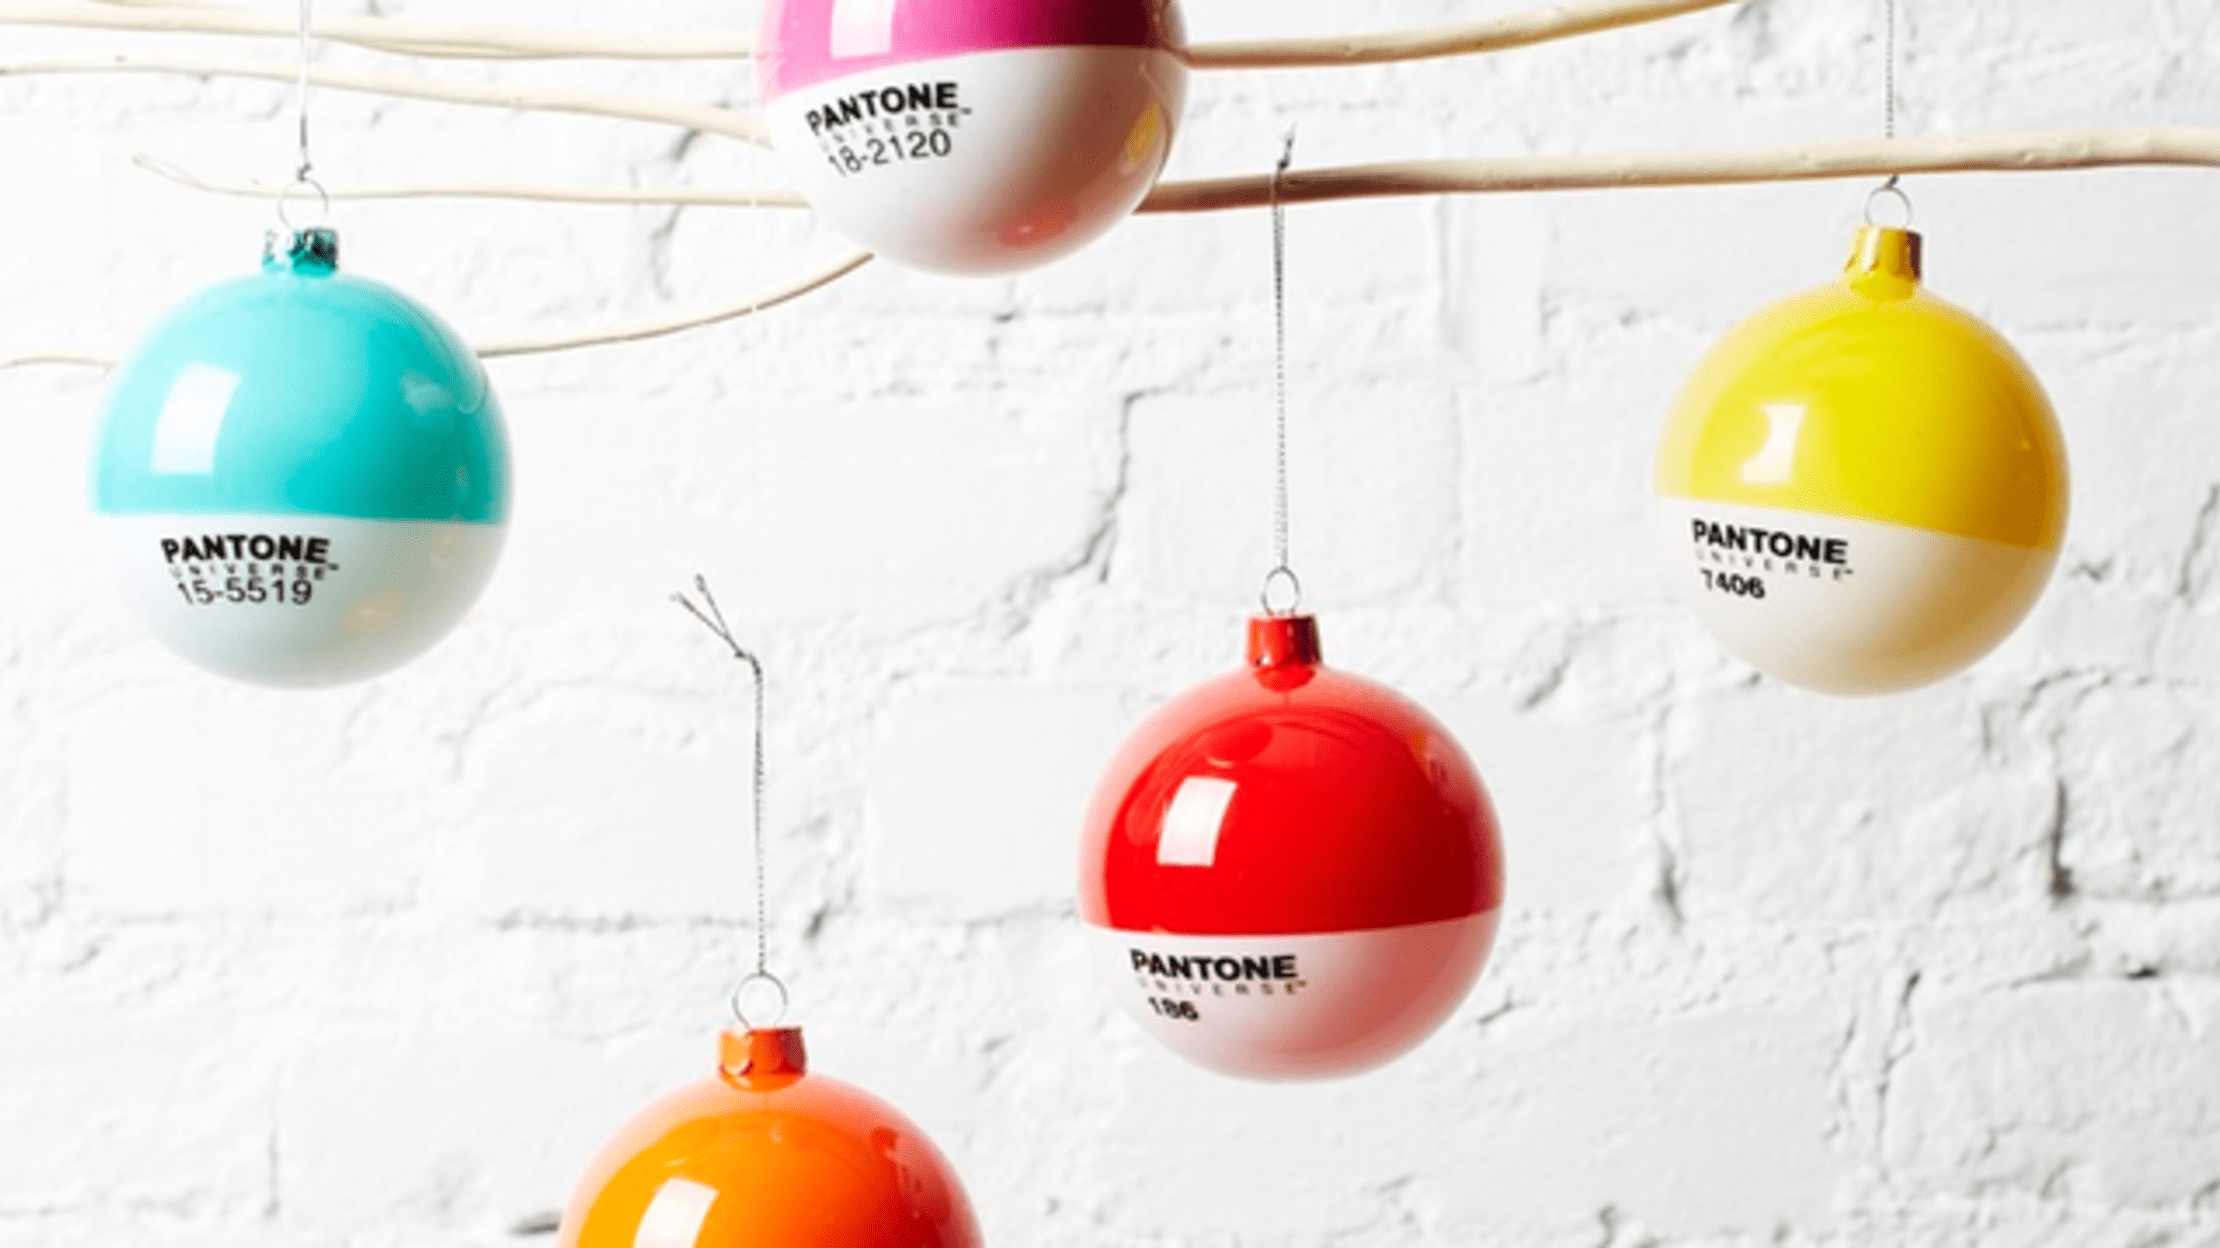 Pantone Christmas Ornaments 30 Unusual And Geeky Ornaments Mental Floss